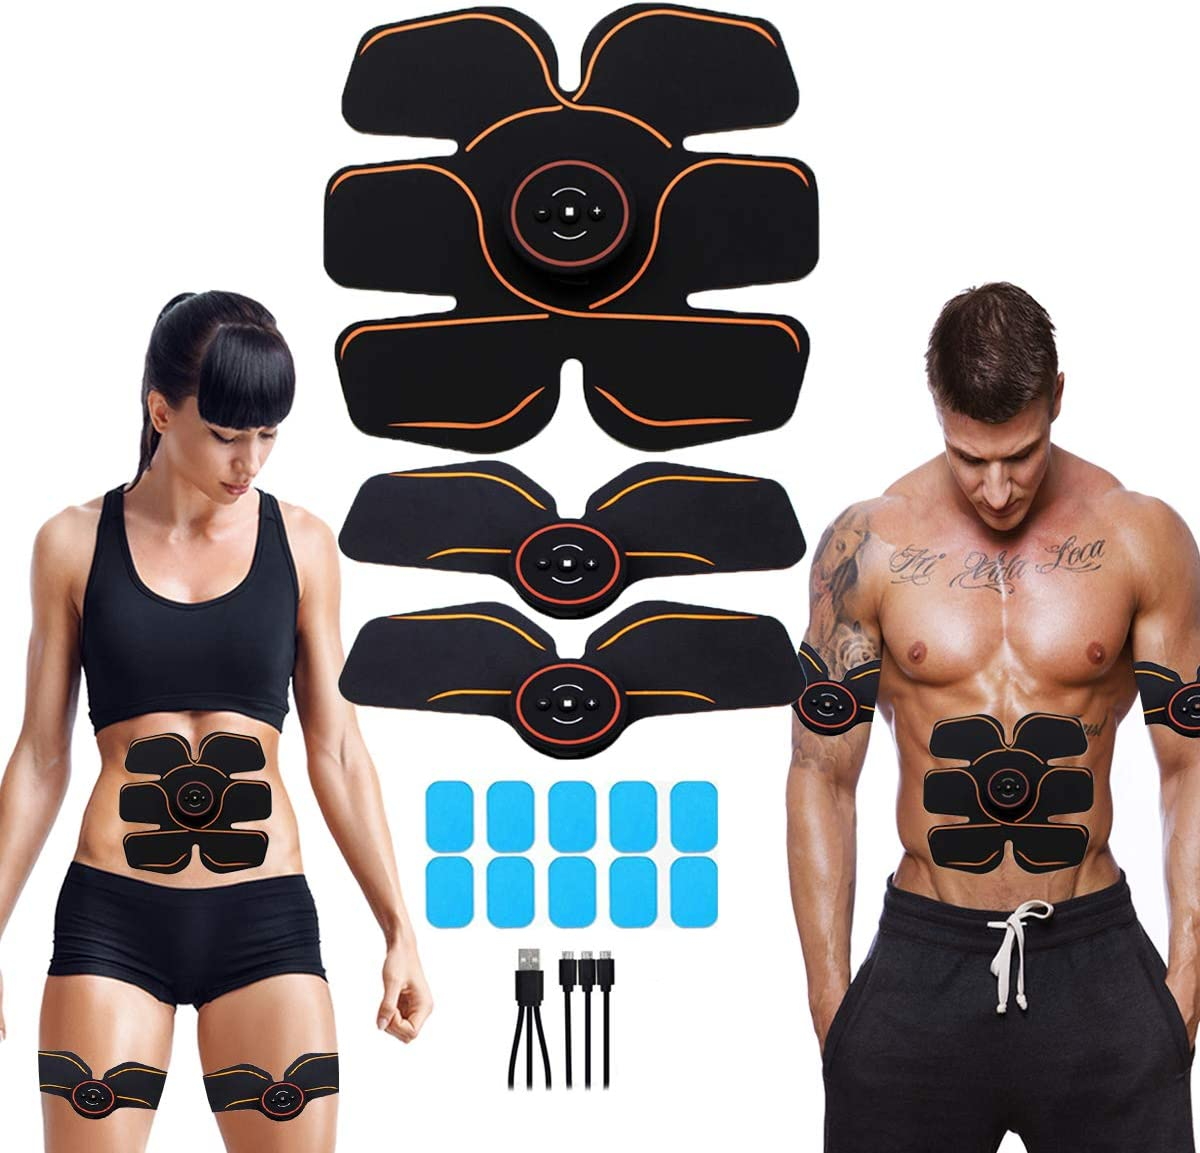 APZOVO Muscle Toner Rechargeable, EMS Abdomen Muscle Trainer with 6 Modes 10 Levels, Muscle Toner Toning Belt for Men Women, Free 10pcs Gel Pads Included